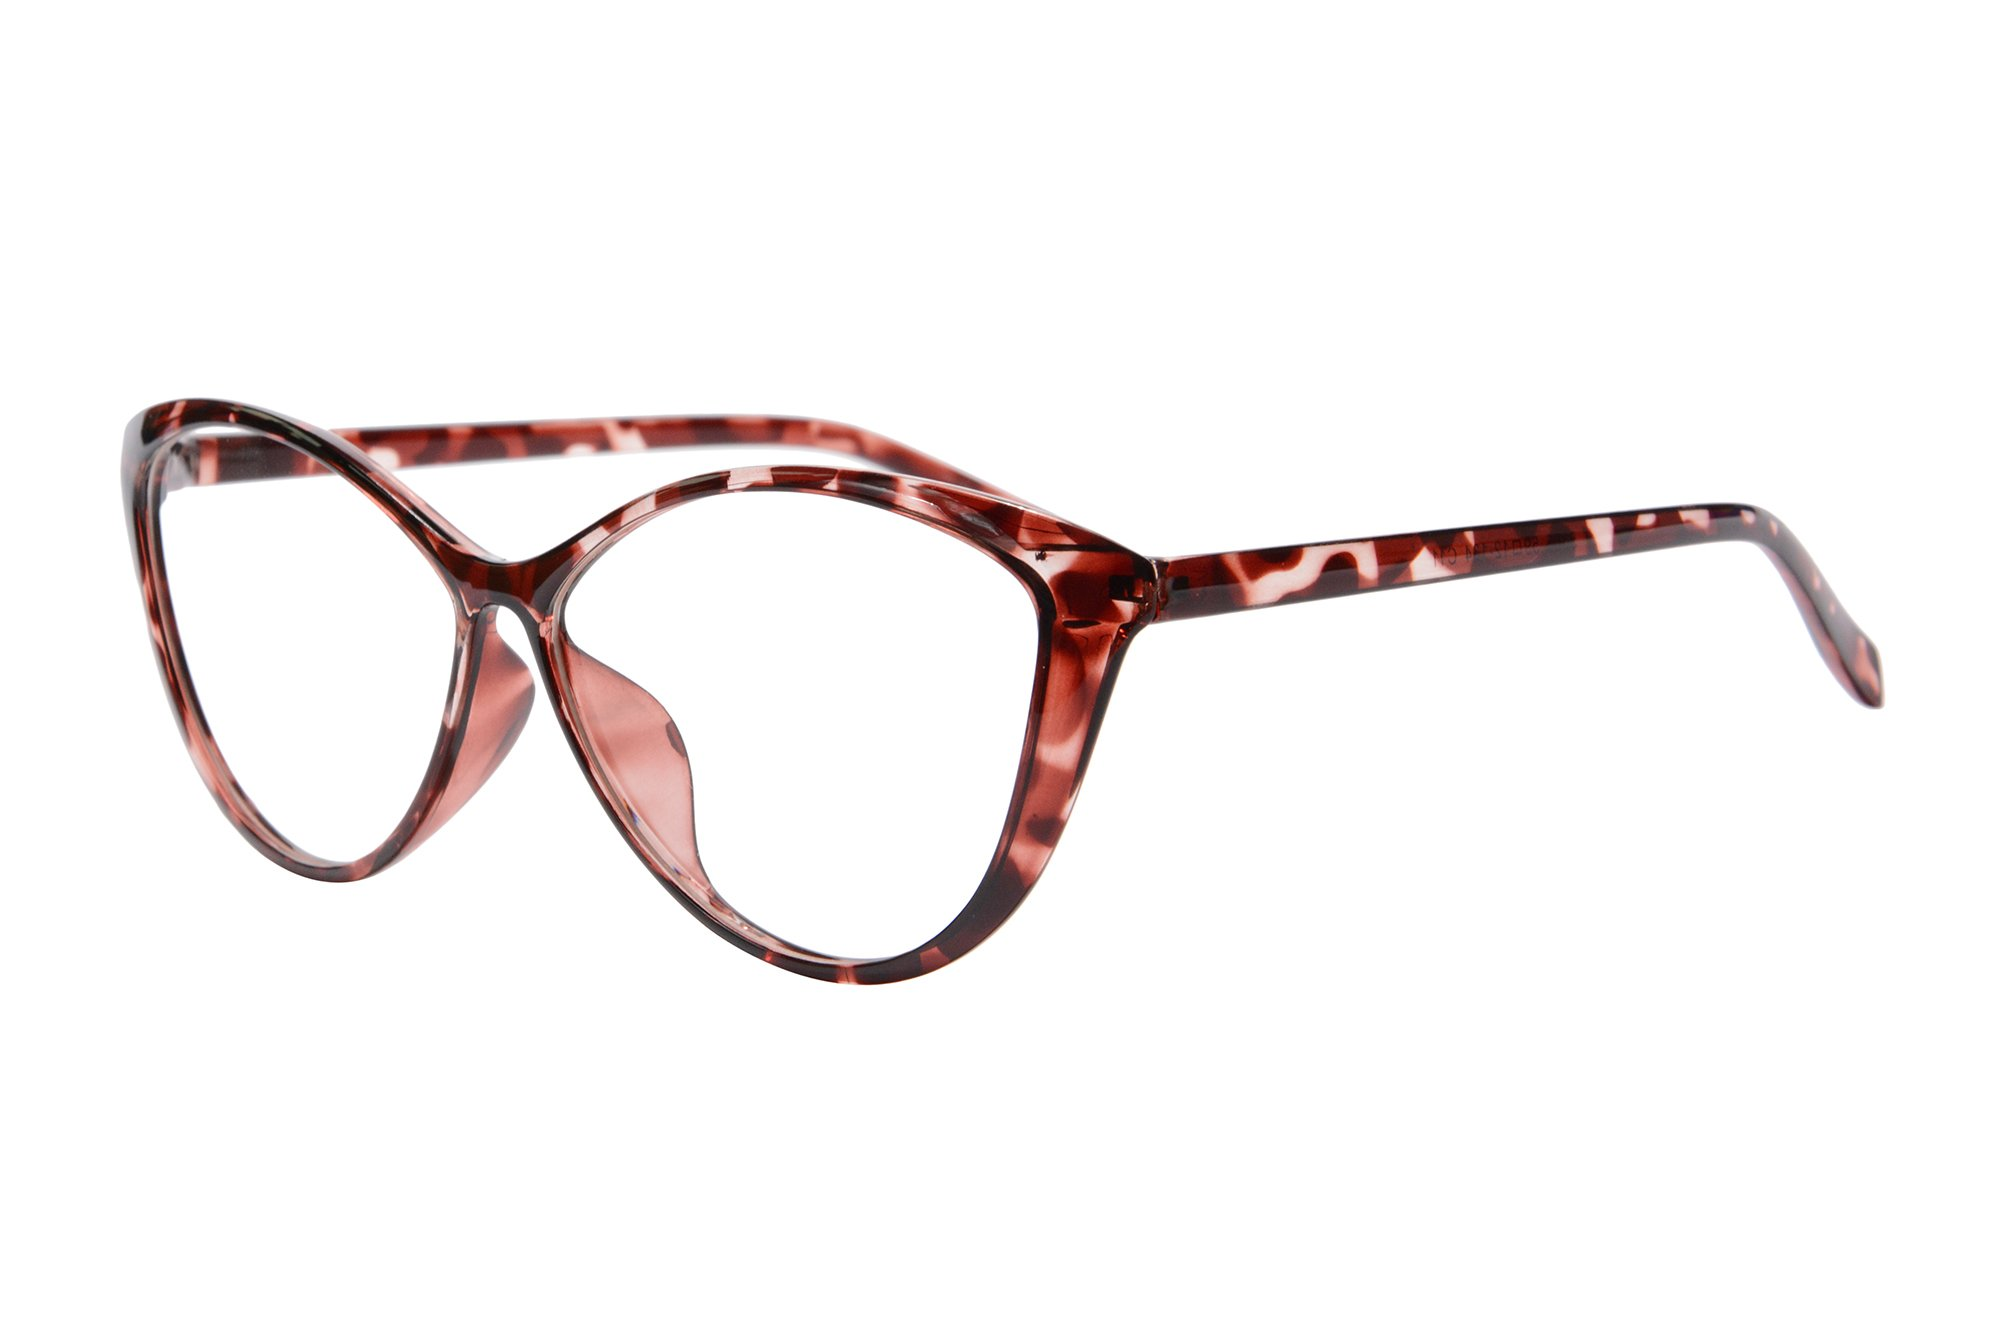 Ladies Cateye Glasses Frames Blue Blocking Clear Lens Computer Reading Glasses-5865(demi red, anti blue light up 0.5 down 3.50)